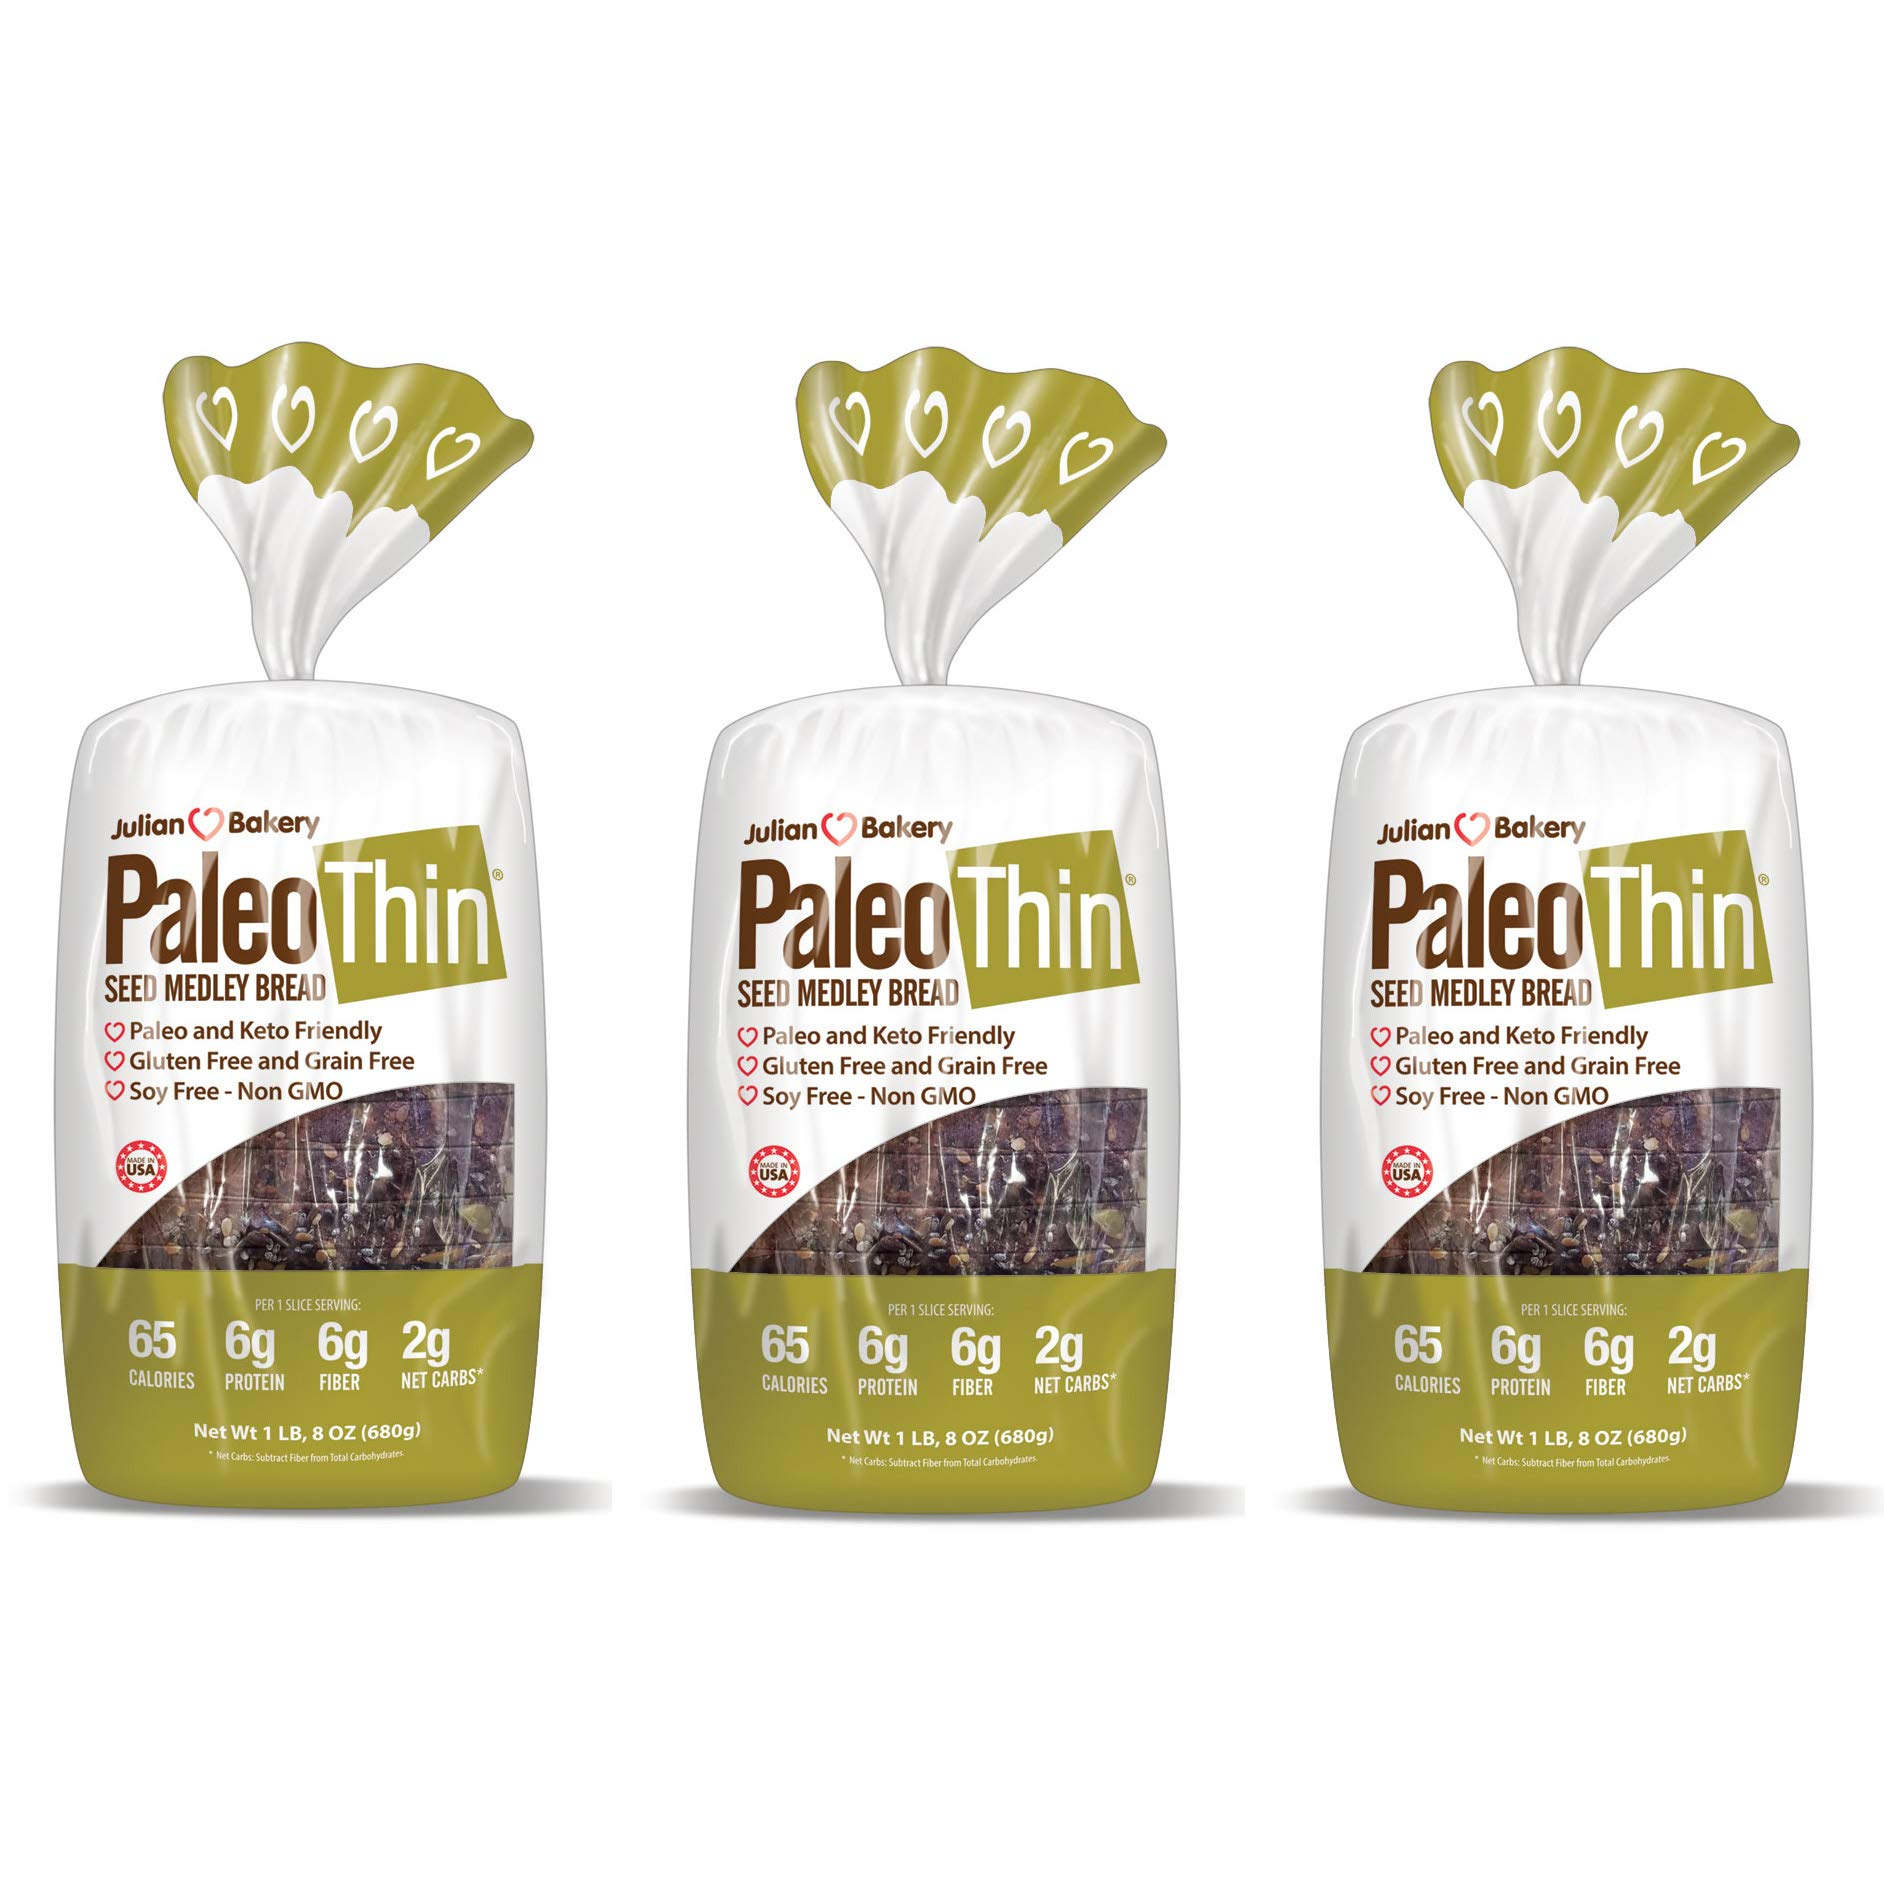 Paleo Bread Seed Medley (3 Pack) Low Carb, Gluten-Free, Grain-Free (2 Net Carbs) by Julian Bakery